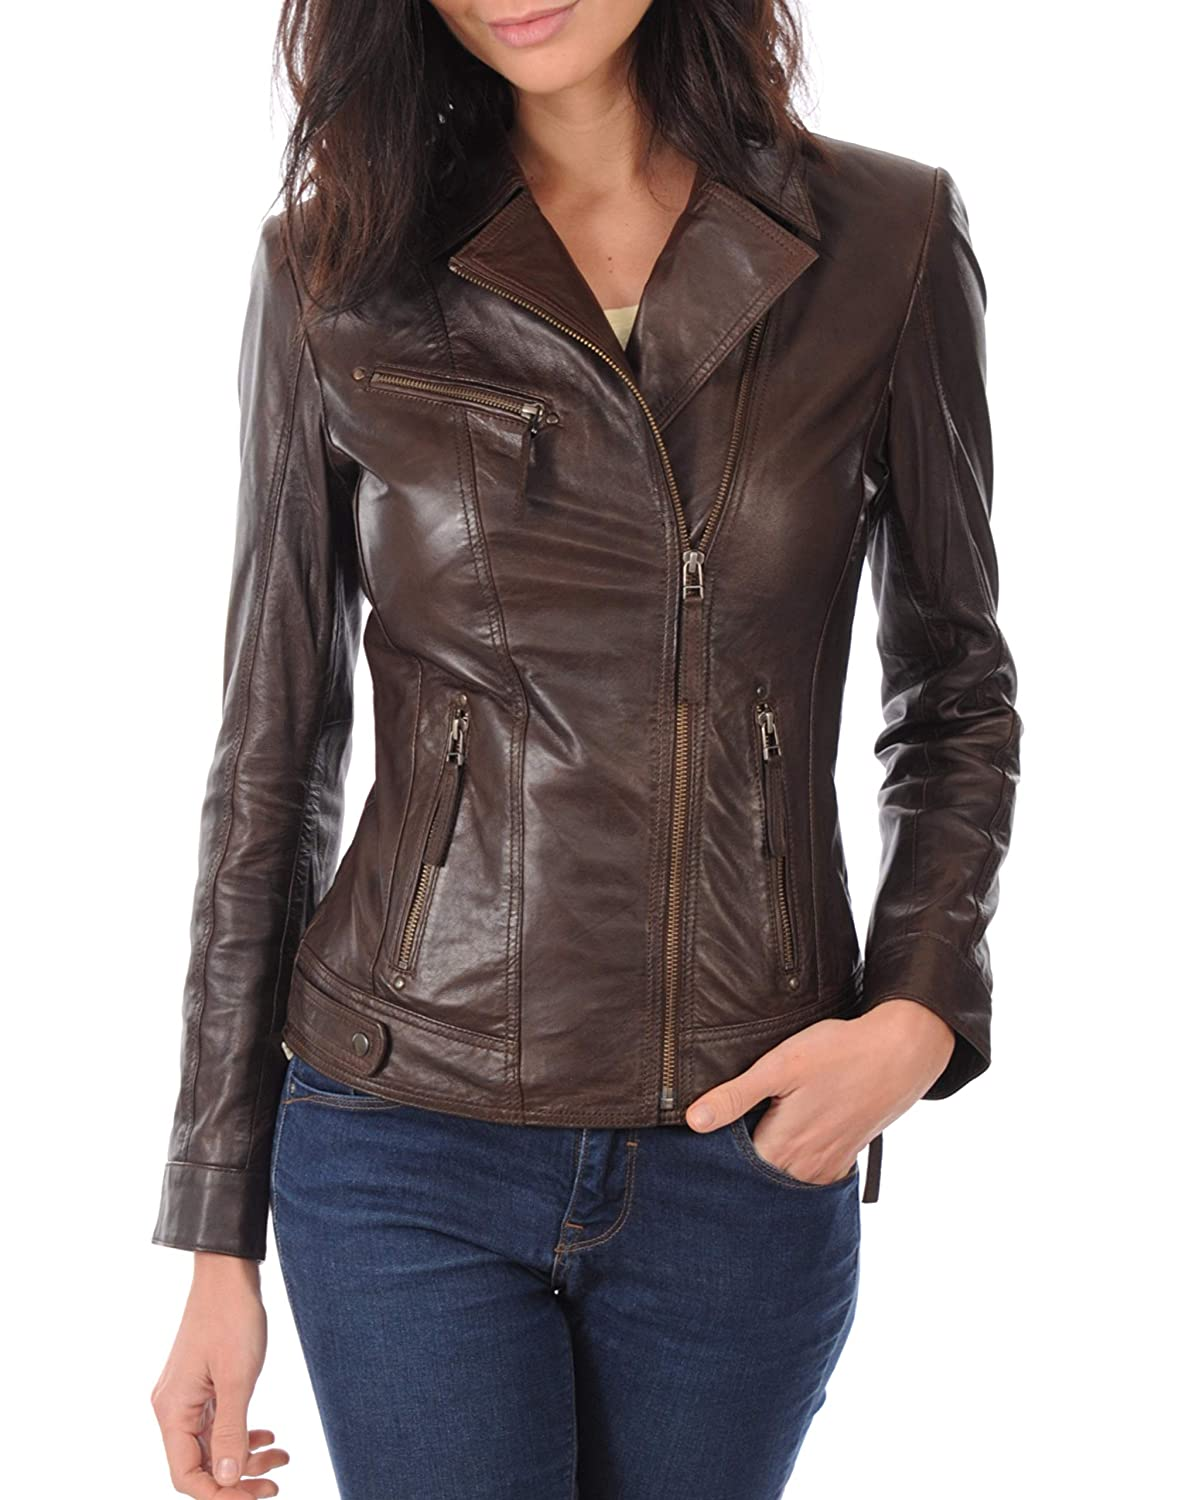 Browns10 DOLBERG CREATIONS Sheepskin Leather Jacket for Womens